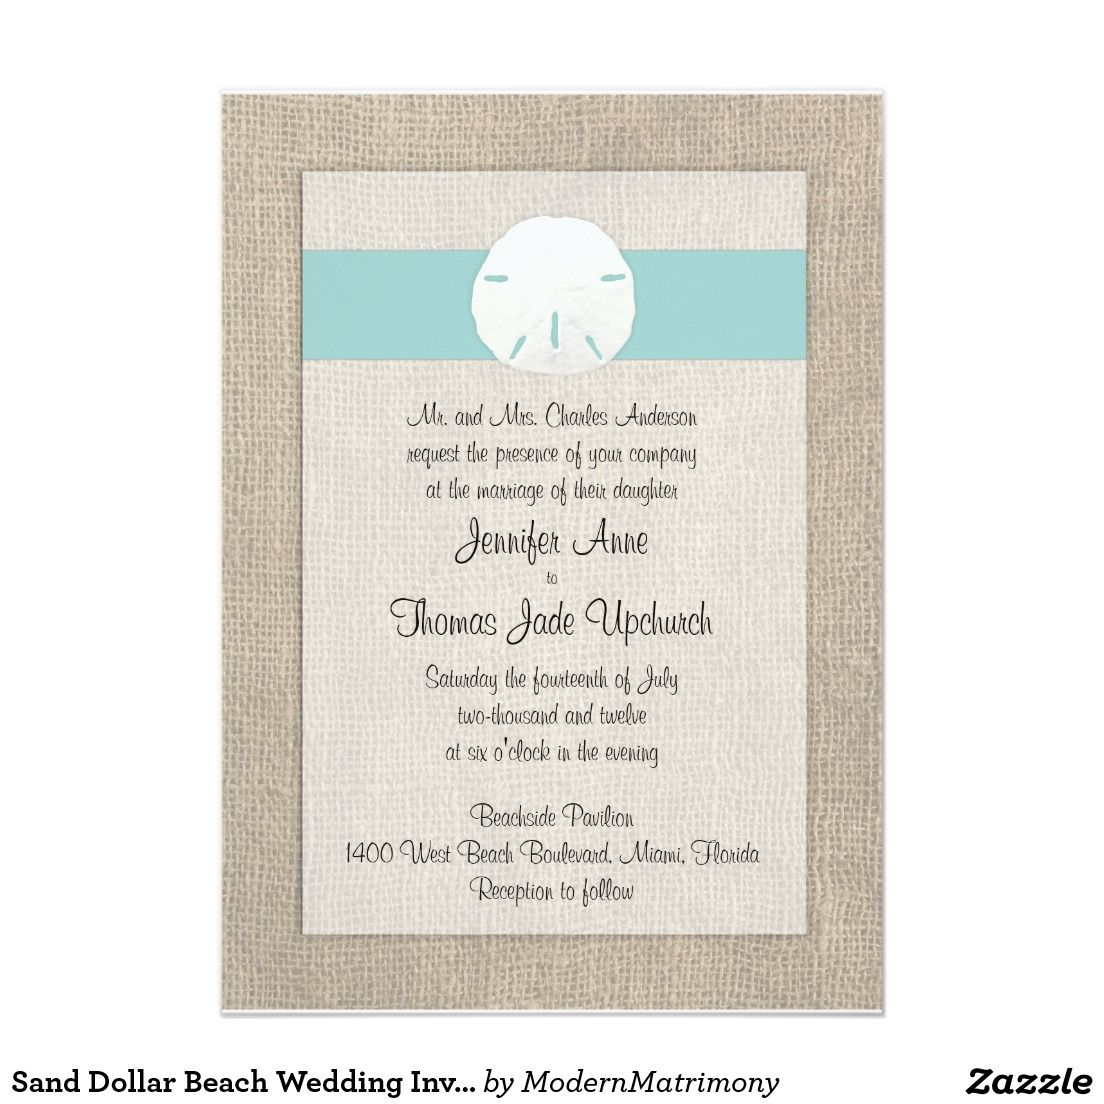 Sand Dollar Beach Wedding Invitation Turquoise Zazzle Com In